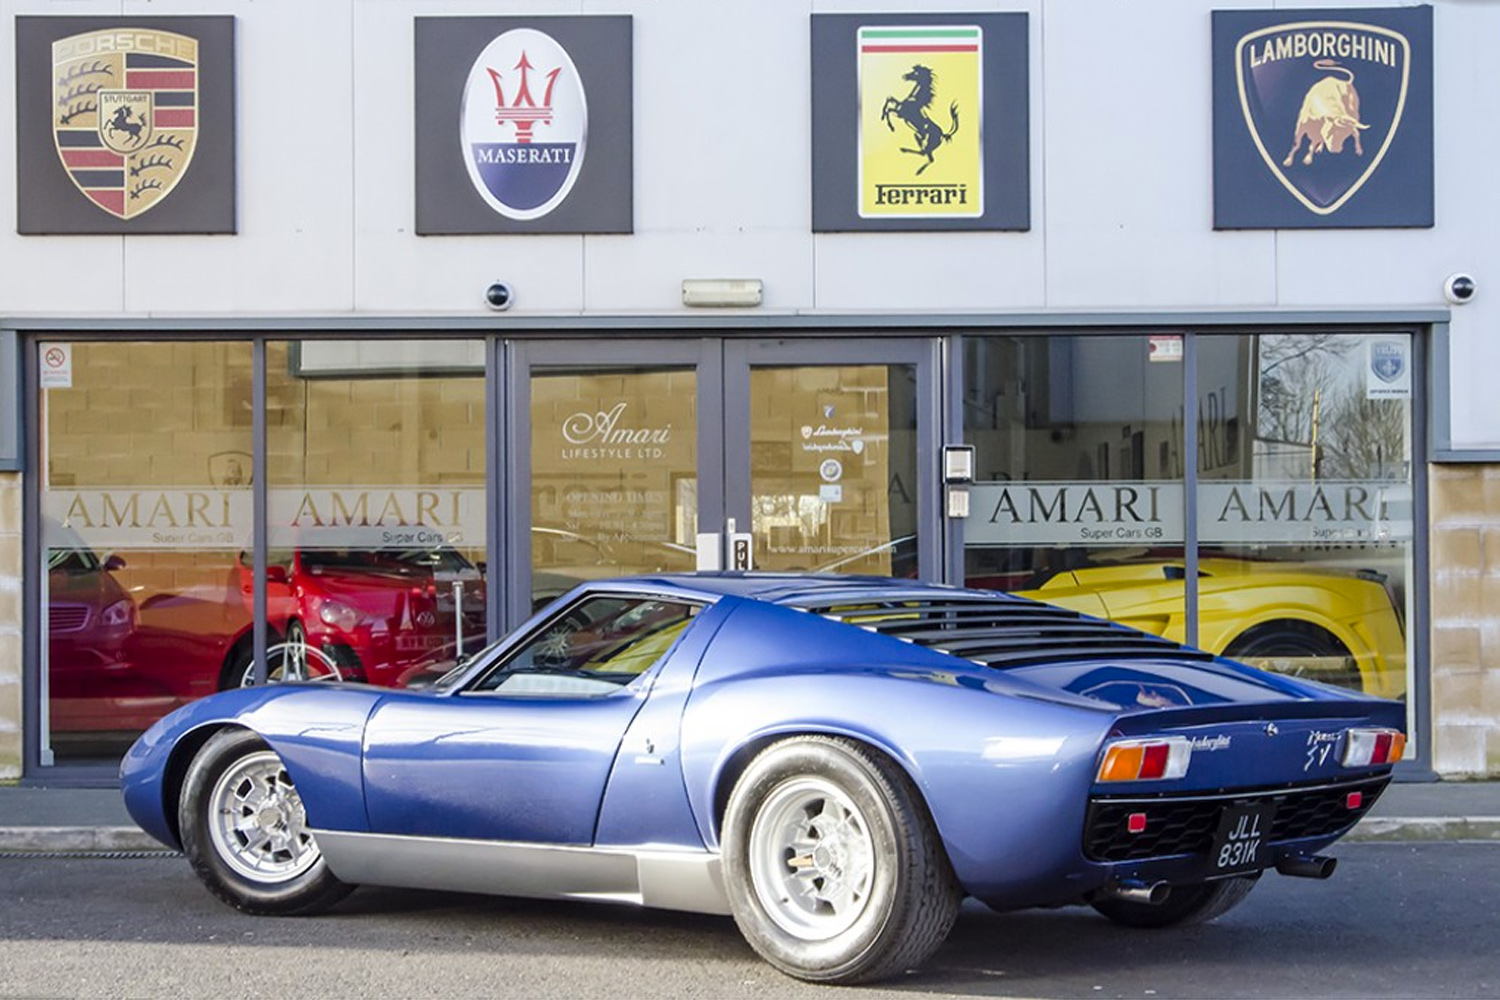 1971 Lamborghini Miura P400 S Owned By Rod Stewart Up For Sale